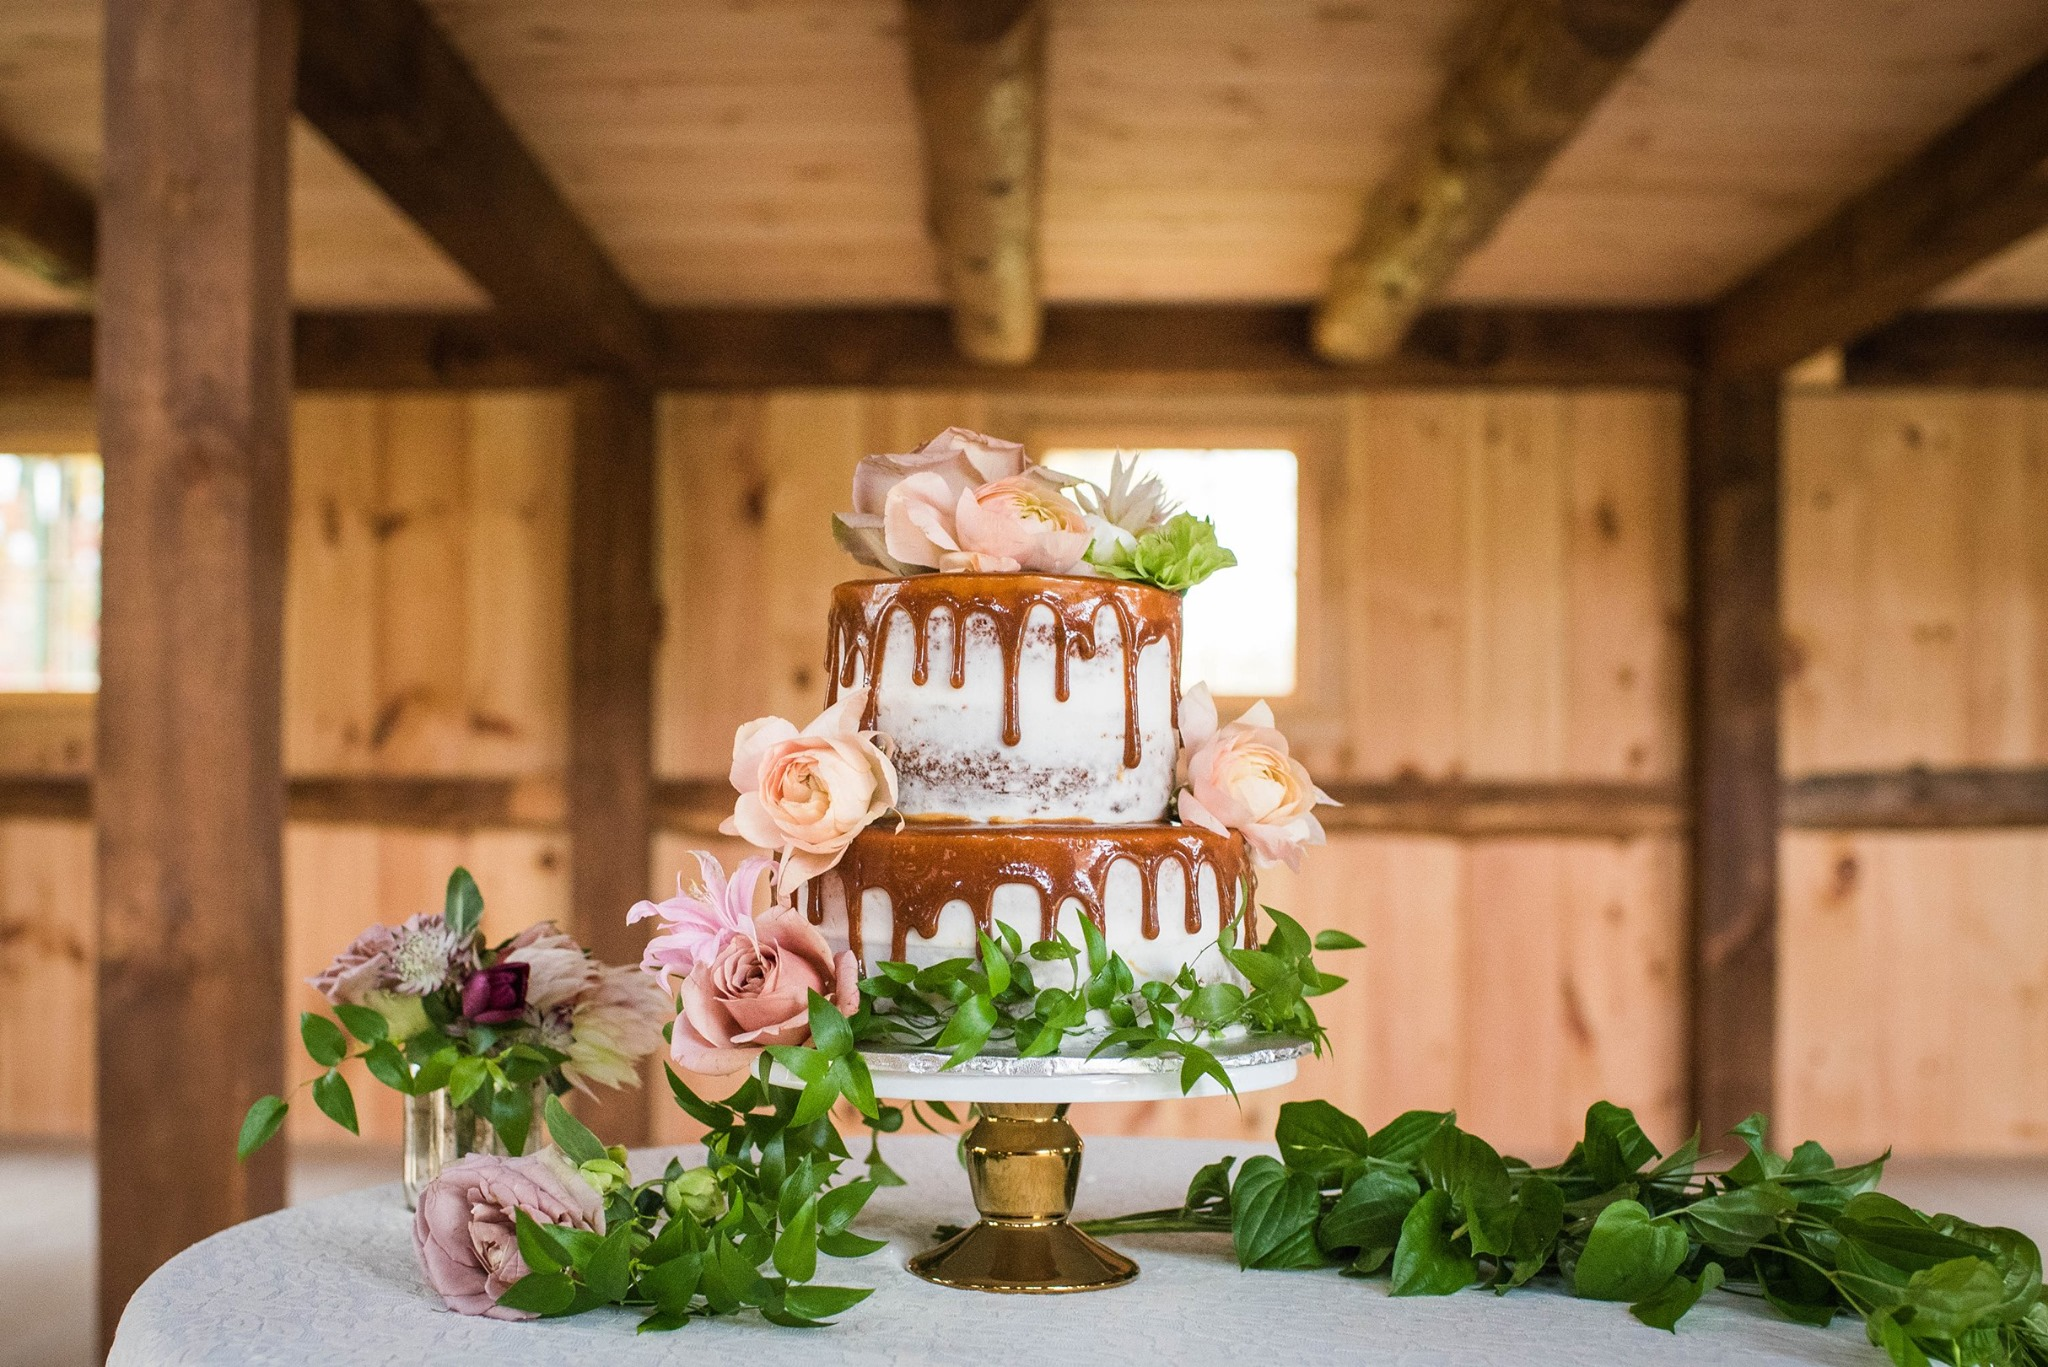 Bohemian style wedding cake (Flowers provided by Free range floral DESIGN) (Photo taken by FReebird photography)